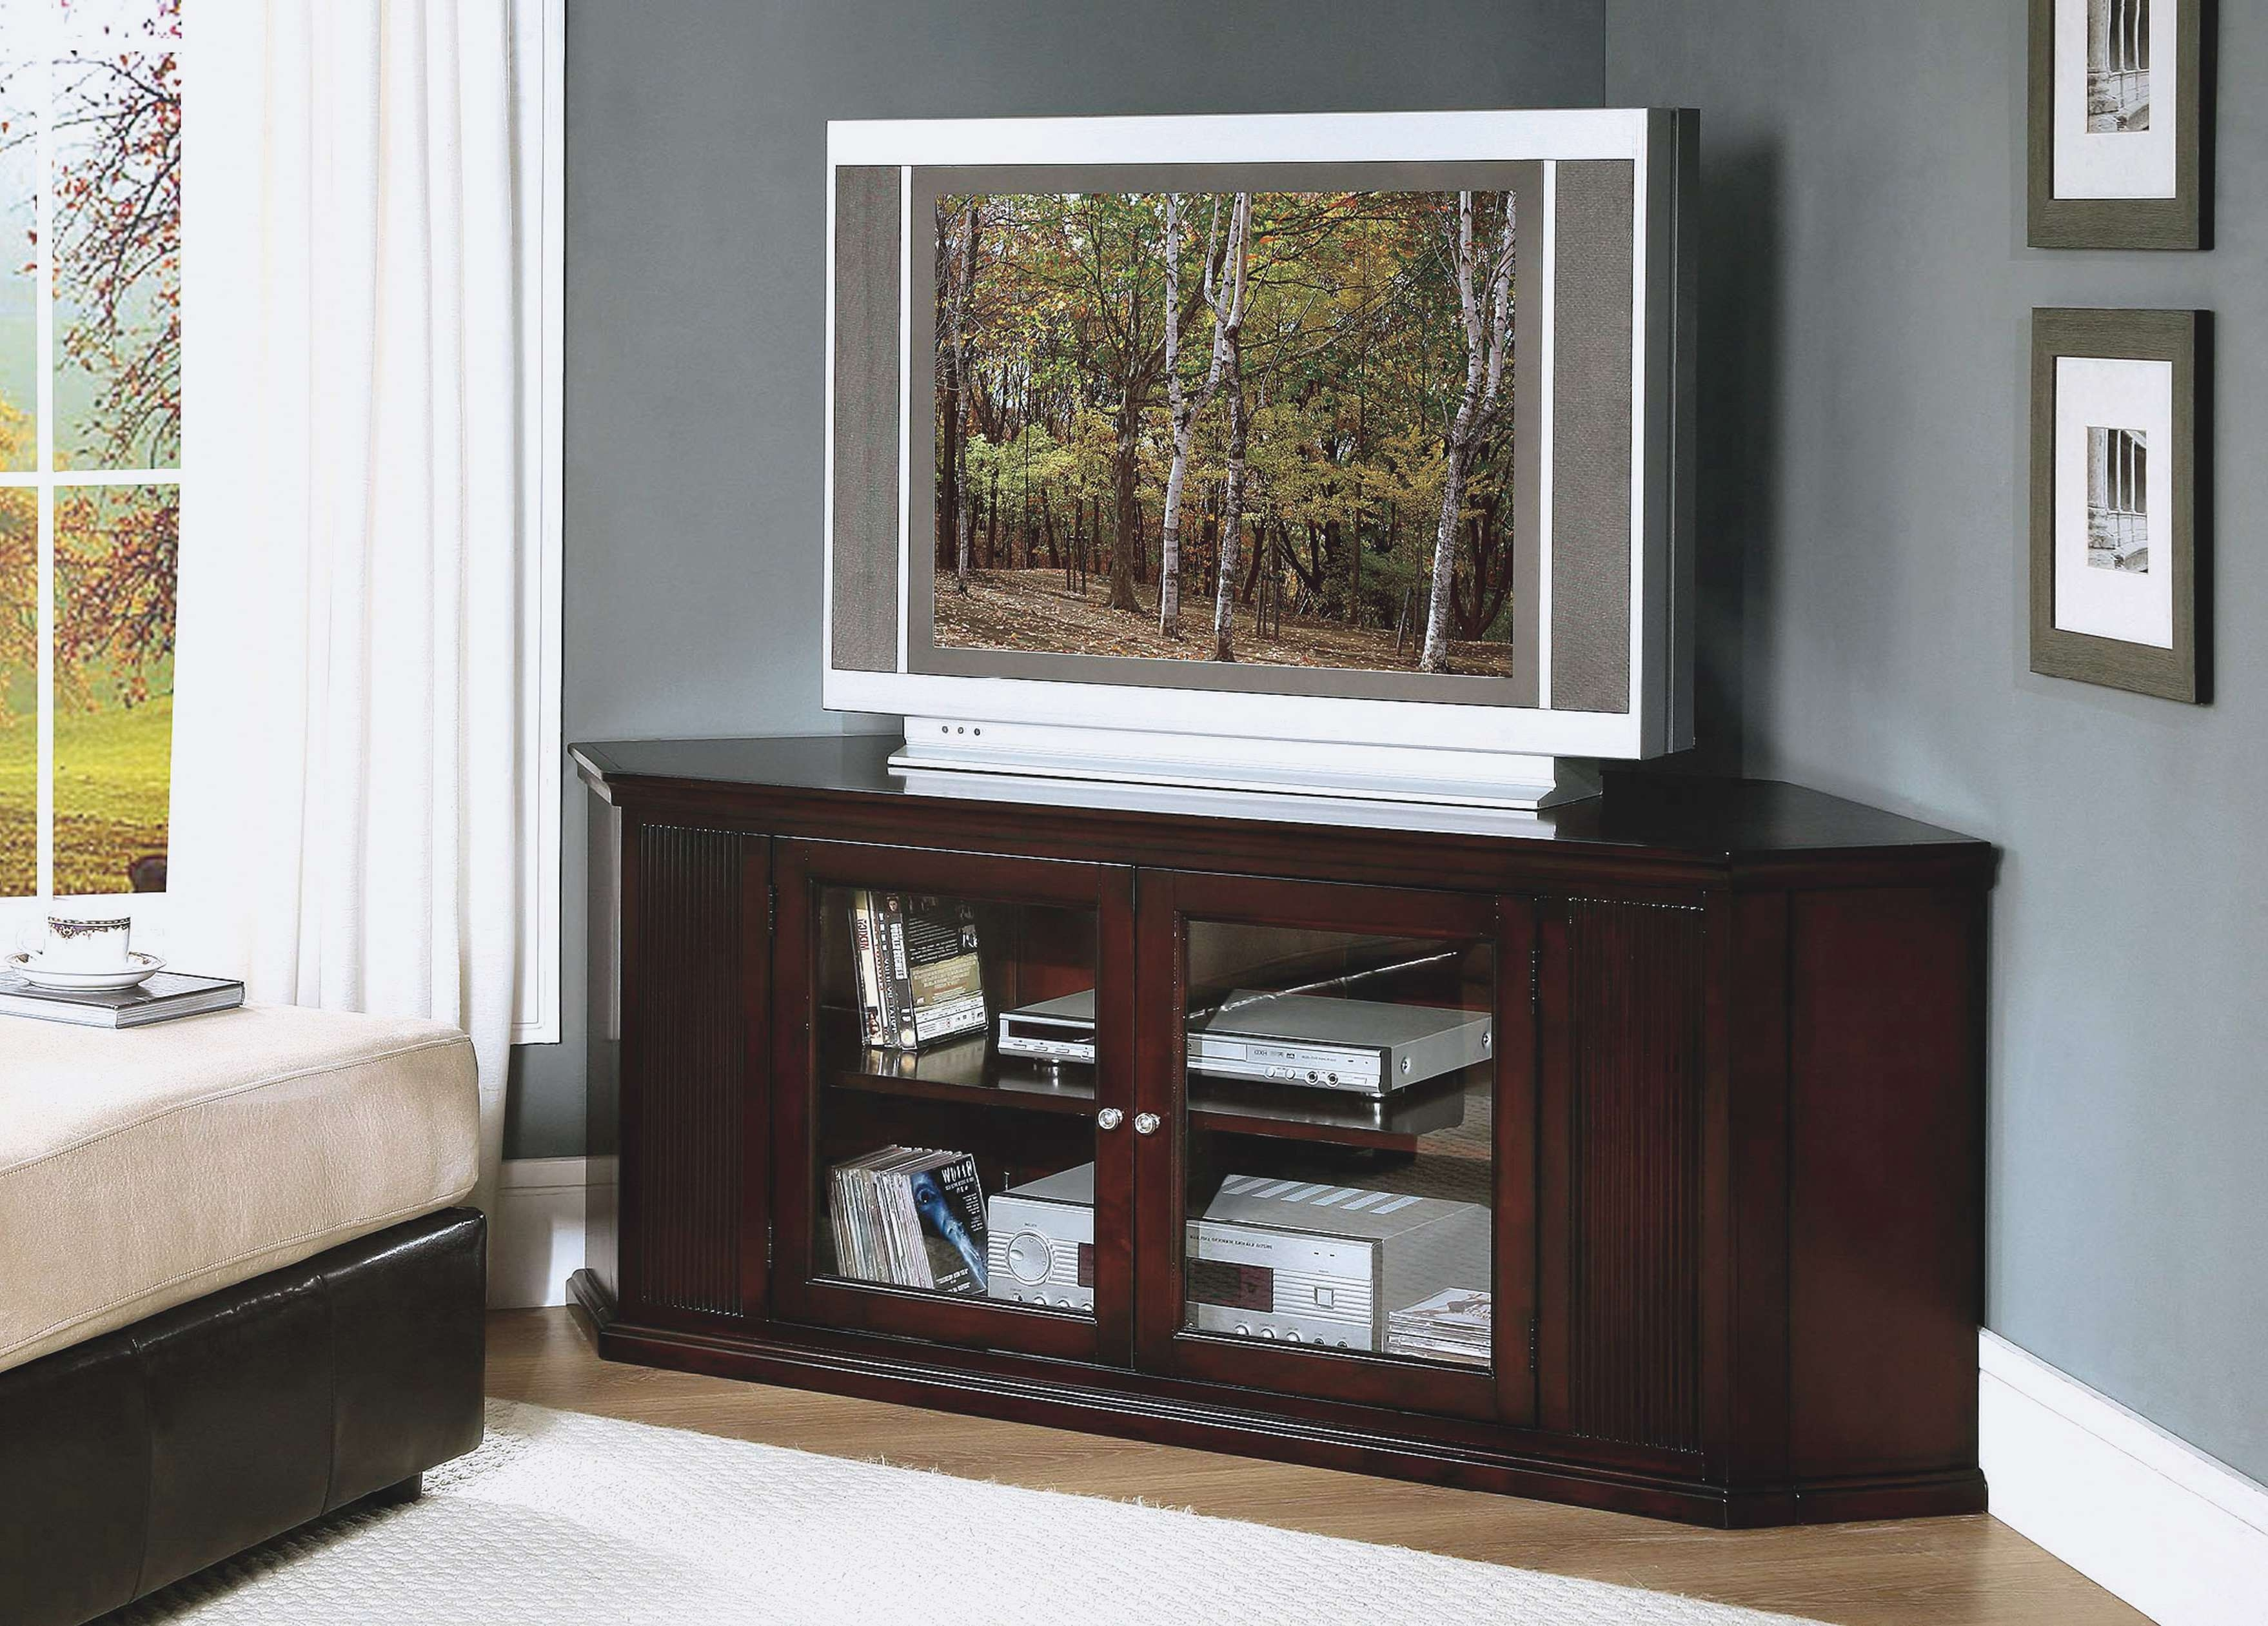 Dark Brown Oak Wood Corner Tv Stand With Glass Doors Of Dazzling Intended For Corner Tv Cabinets With Glass Doors (View 10 of 20)